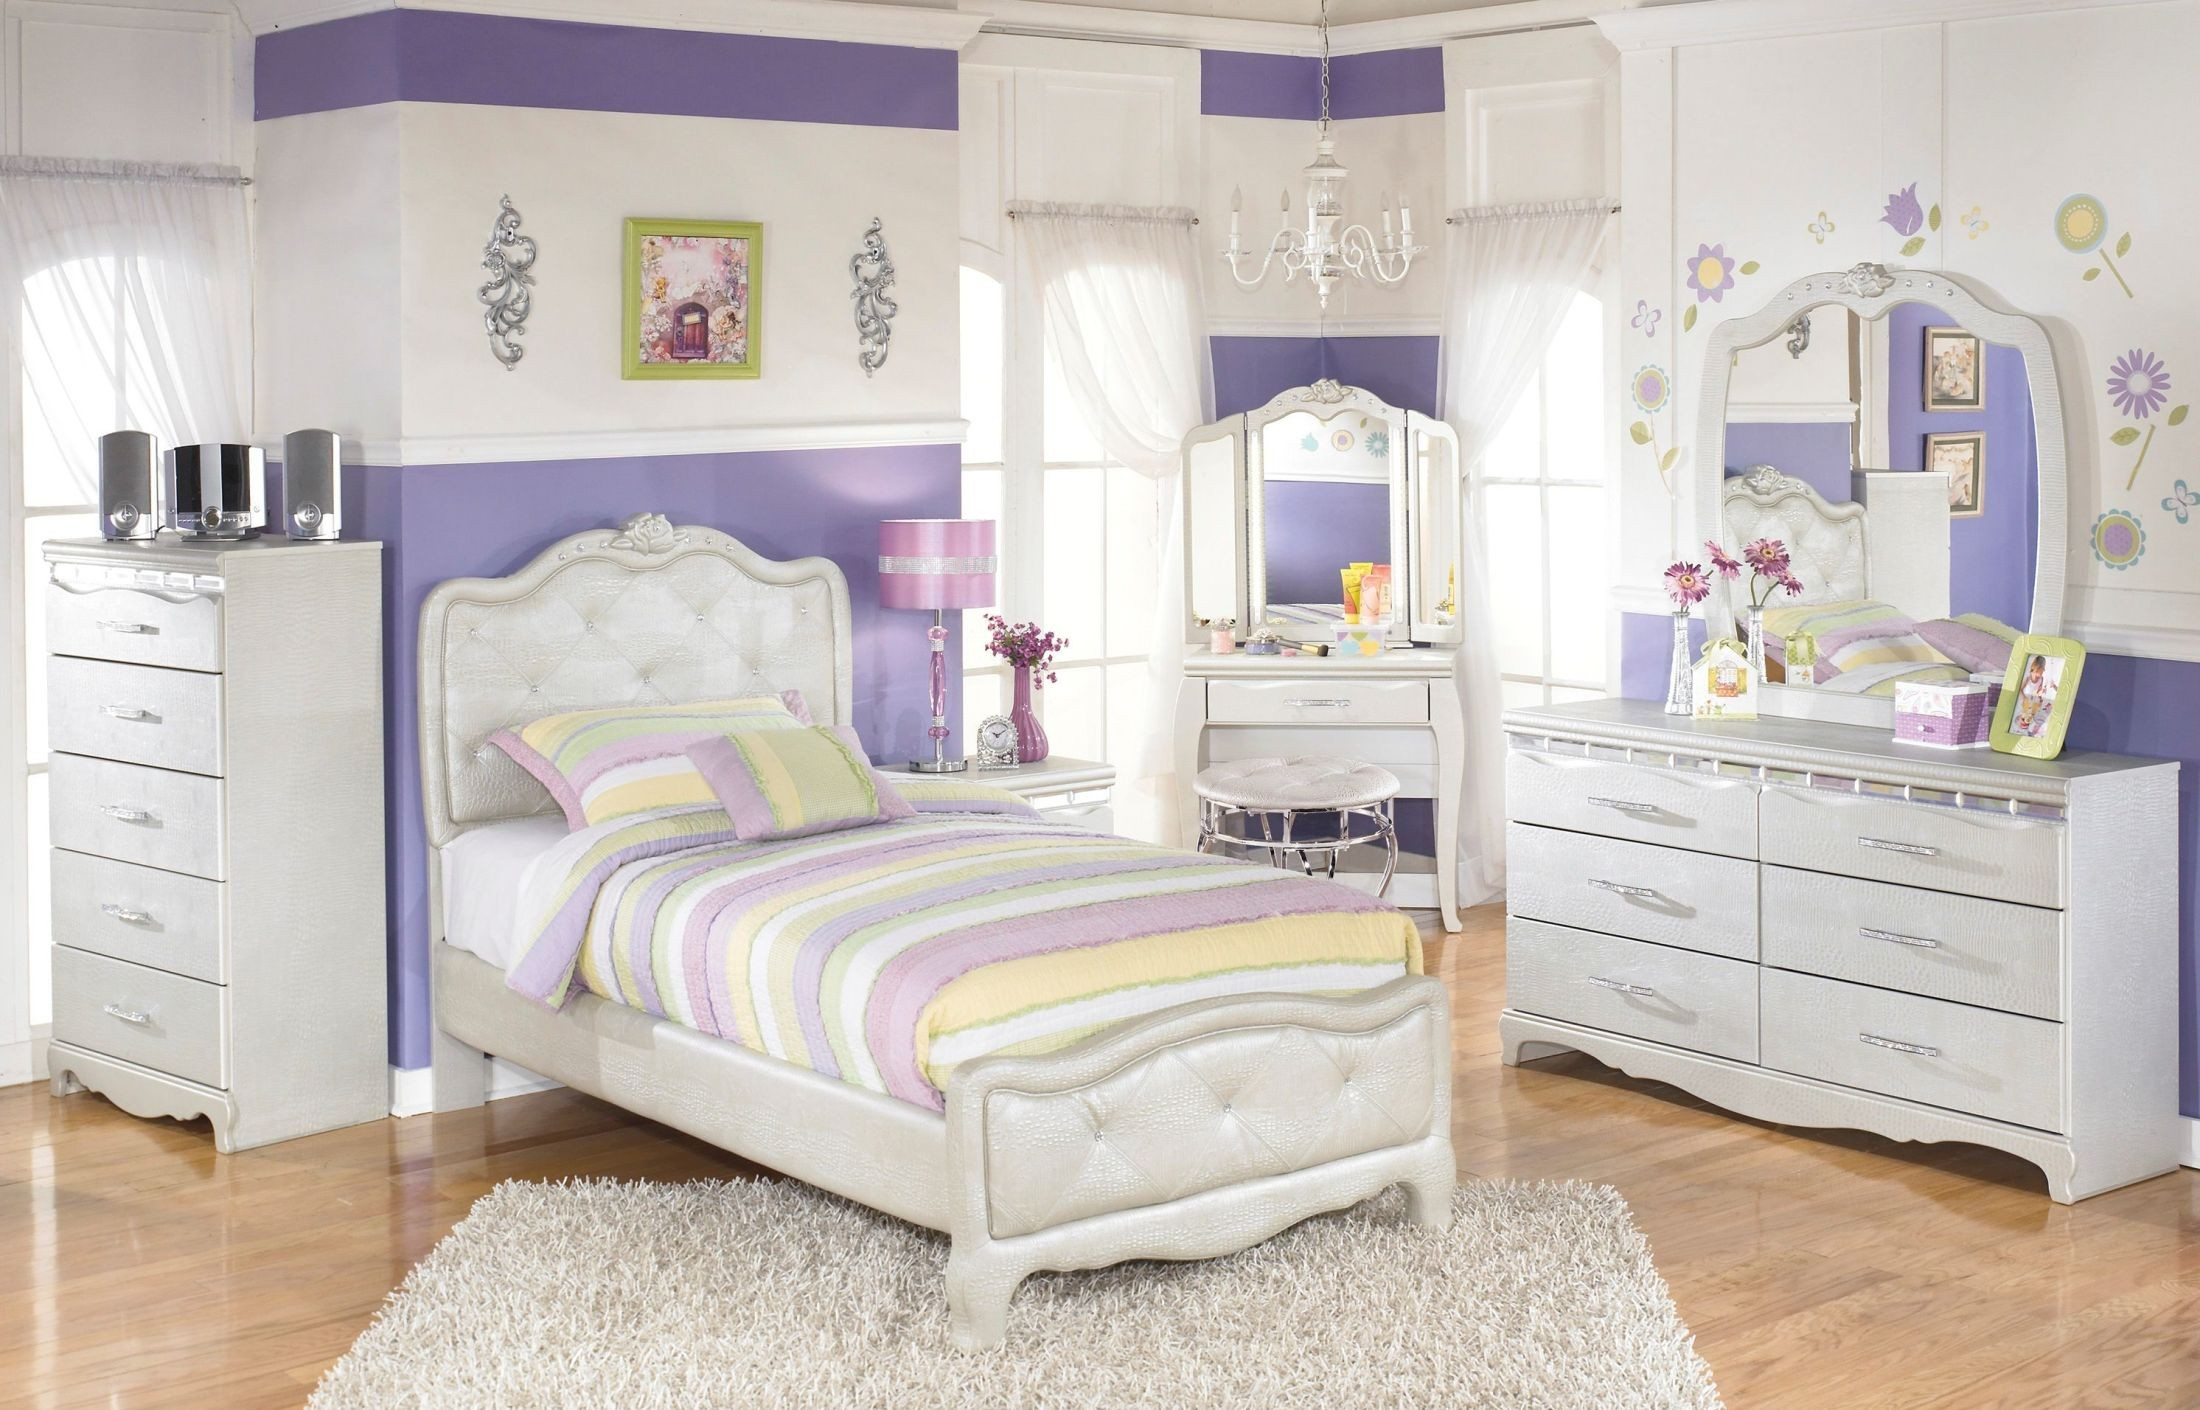 zarollina youth upholstered bedroom set from ashley b182 13894 | b182 21 26 46 63 62 90 92 22 37 01